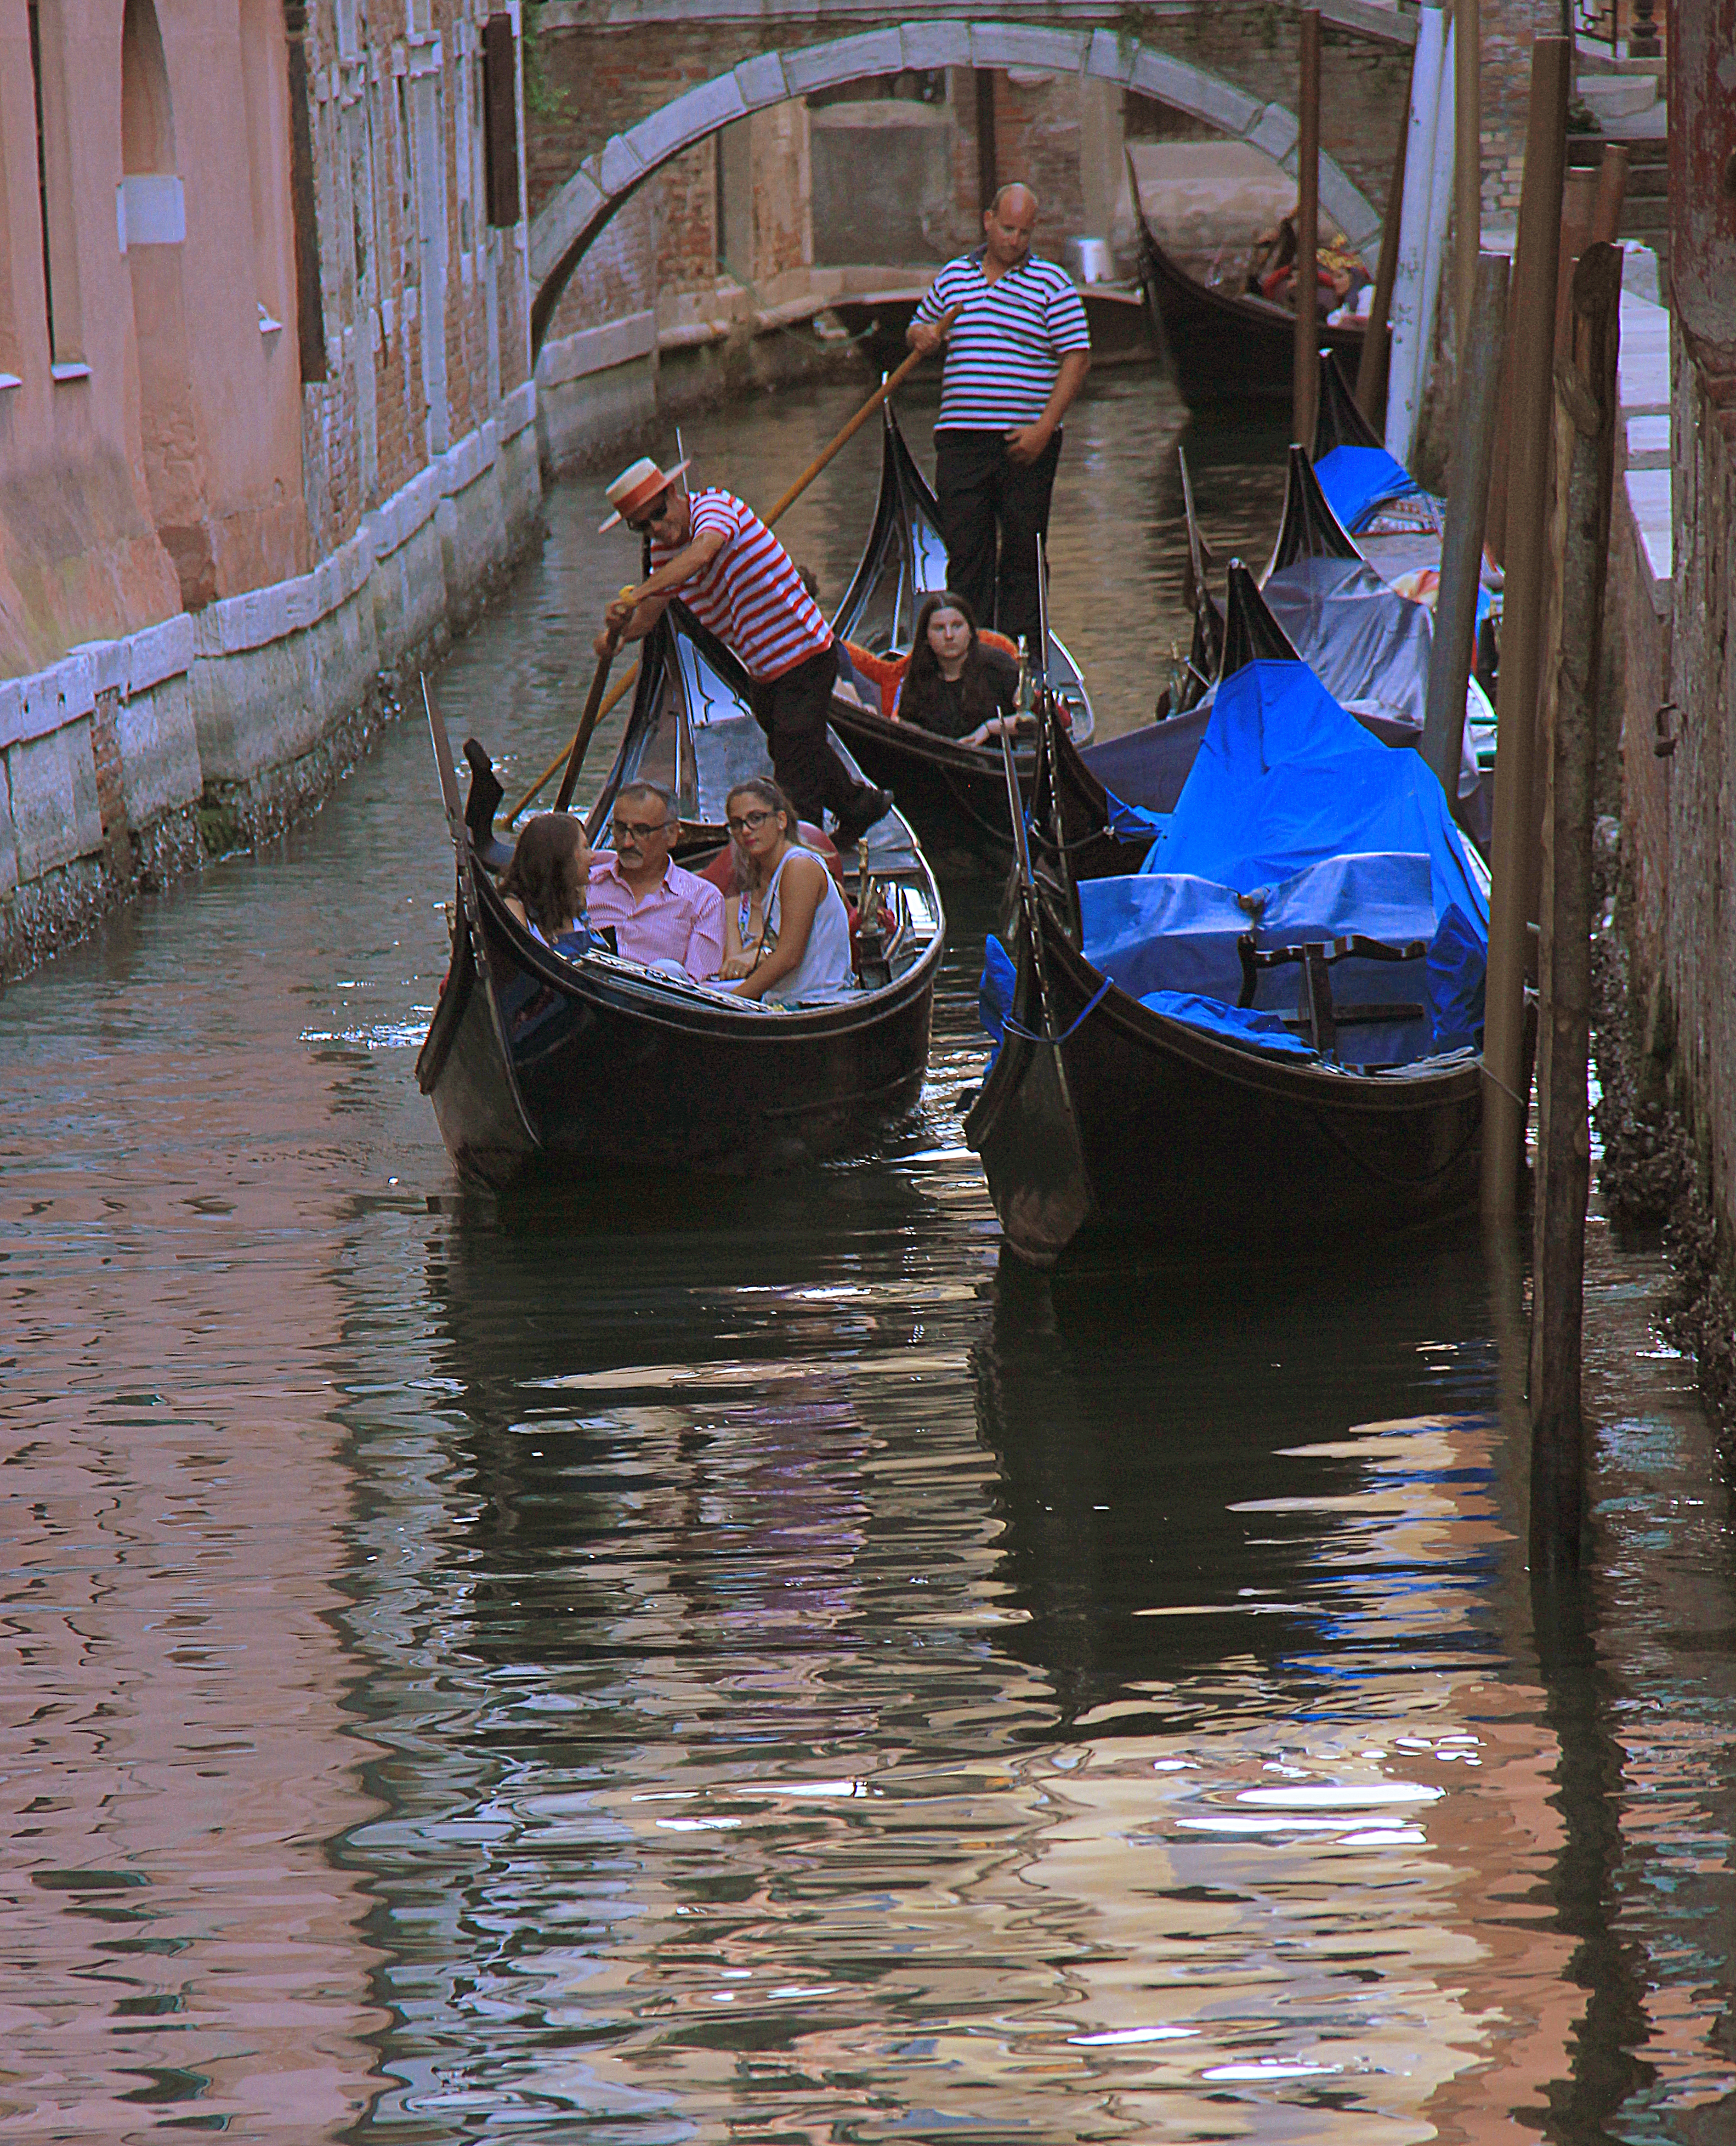 Visiting Venice on a budget means curtailing expensive pleasures like gondola ride.